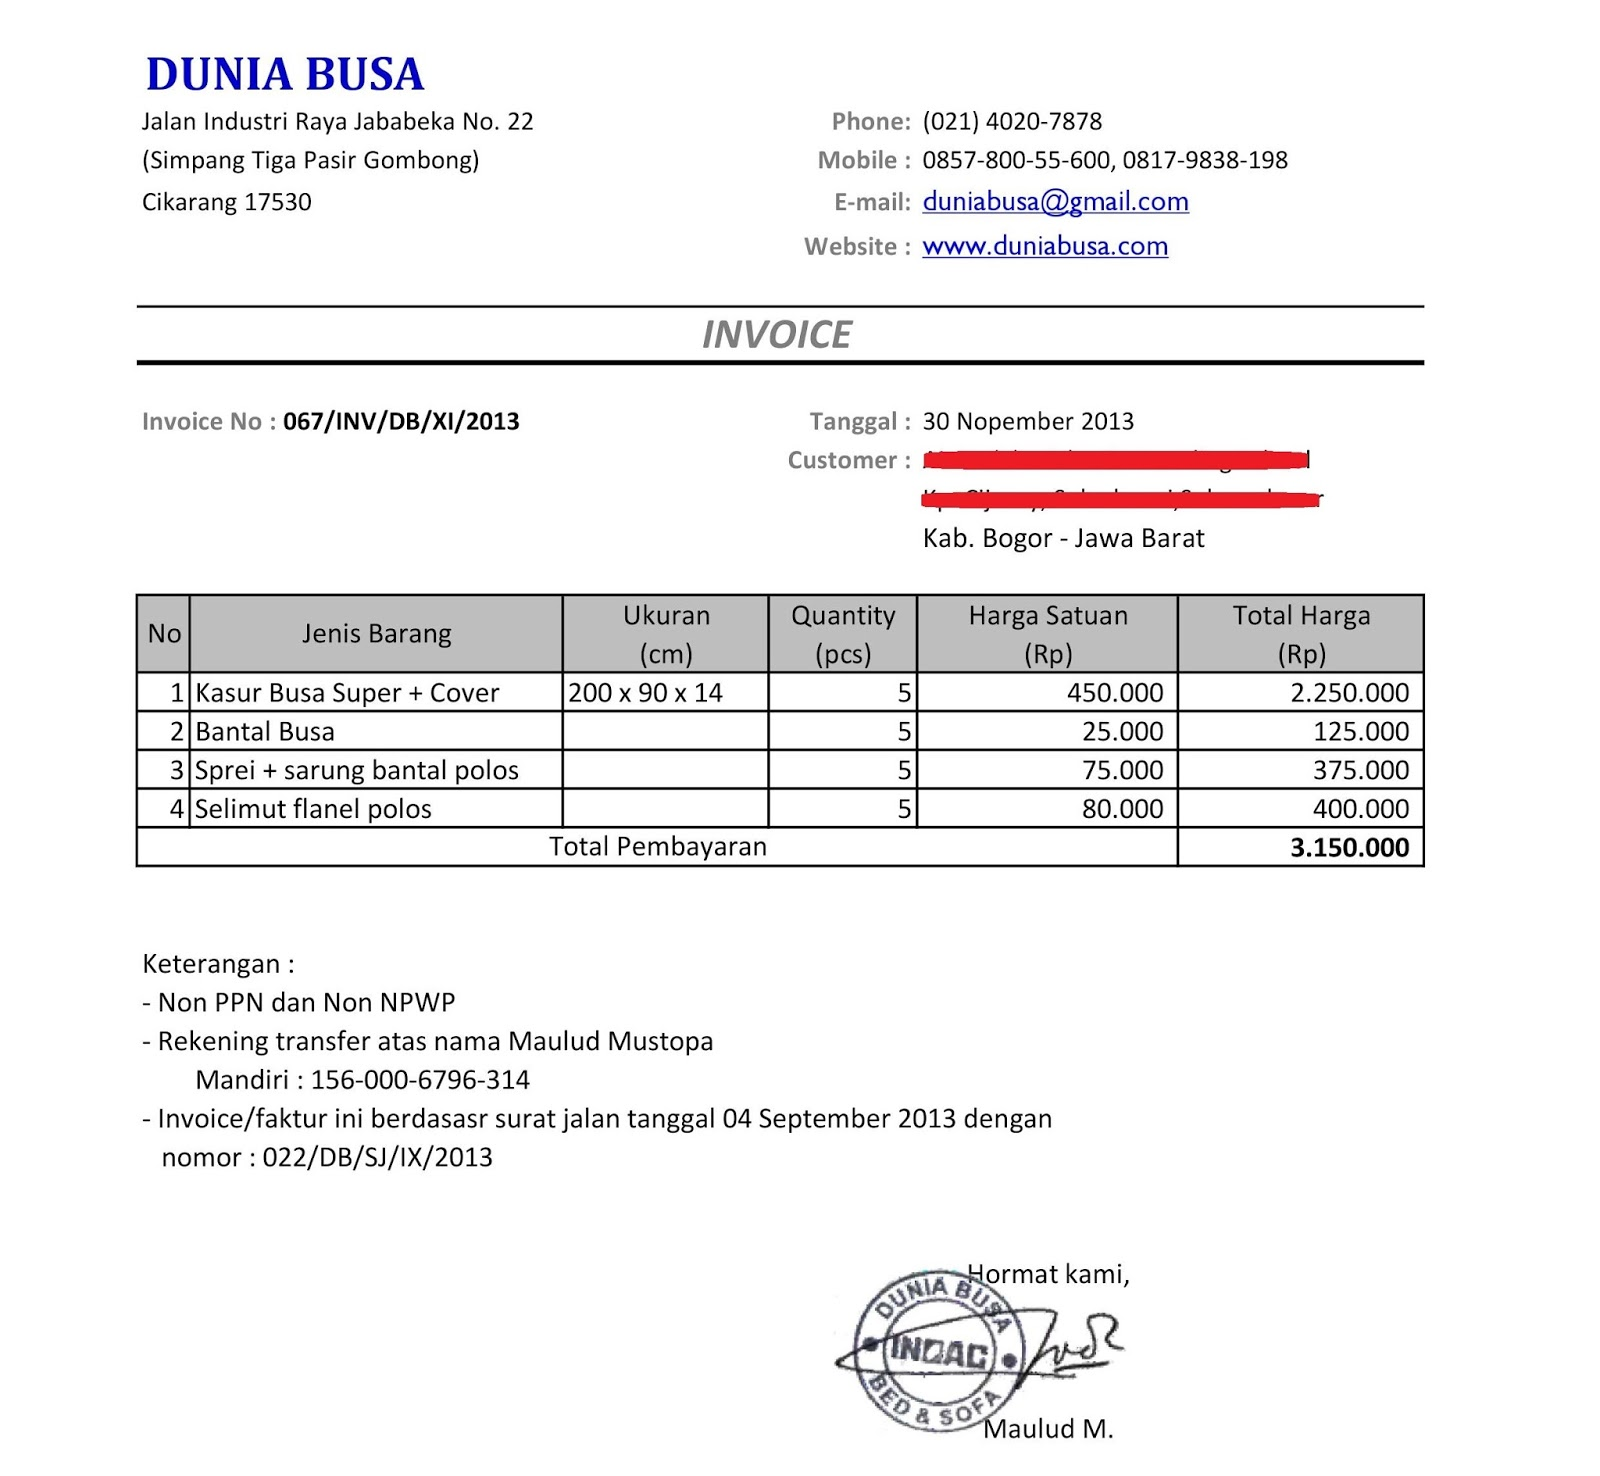 Barneybonesus  Picturesque Free Invoice Online  Create Invoice Online  Invoice Template  With Glamorous Contoh Format Invoice Atau Surat Tagihan  Brankas Arsip  Free Invoice Online With Delightful Form Receipt Also Where Is The Tracking Number On A Post Office Receipt In Addition Serial Receipt Printer And Receipt Of Document As Well As Printable Receipt For Payment Additionally Acknowledgement Receipts From Sklepco With Barneybonesus  Glamorous Free Invoice Online  Create Invoice Online  Invoice Template  With Delightful Contoh Format Invoice Atau Surat Tagihan  Brankas Arsip  Free Invoice Online And Picturesque Form Receipt Also Where Is The Tracking Number On A Post Office Receipt In Addition Serial Receipt Printer From Sklepco